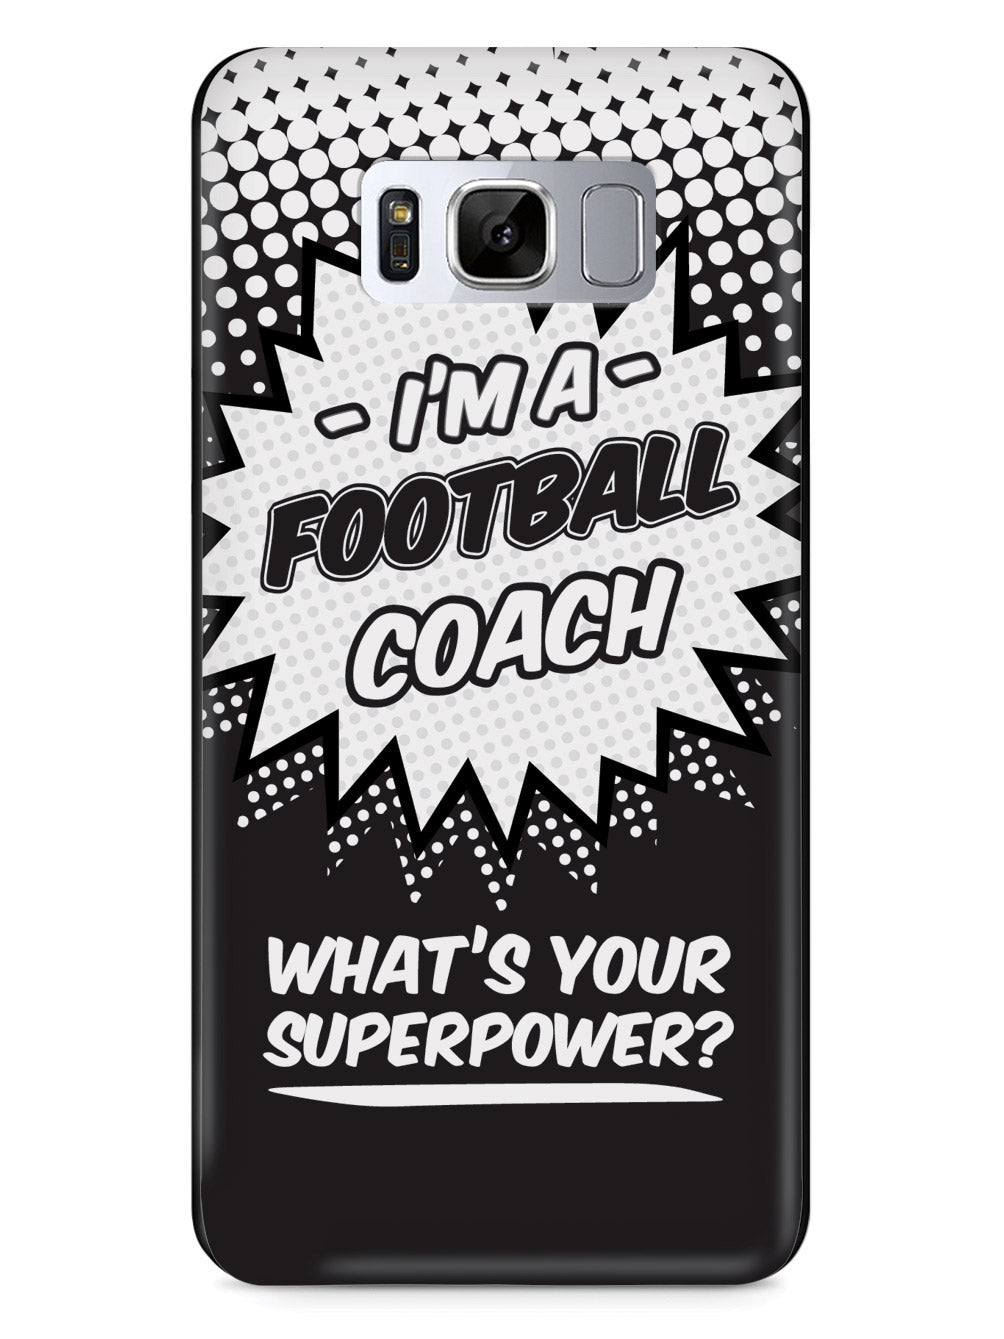 Football Coach - What's Your Superpower? Case